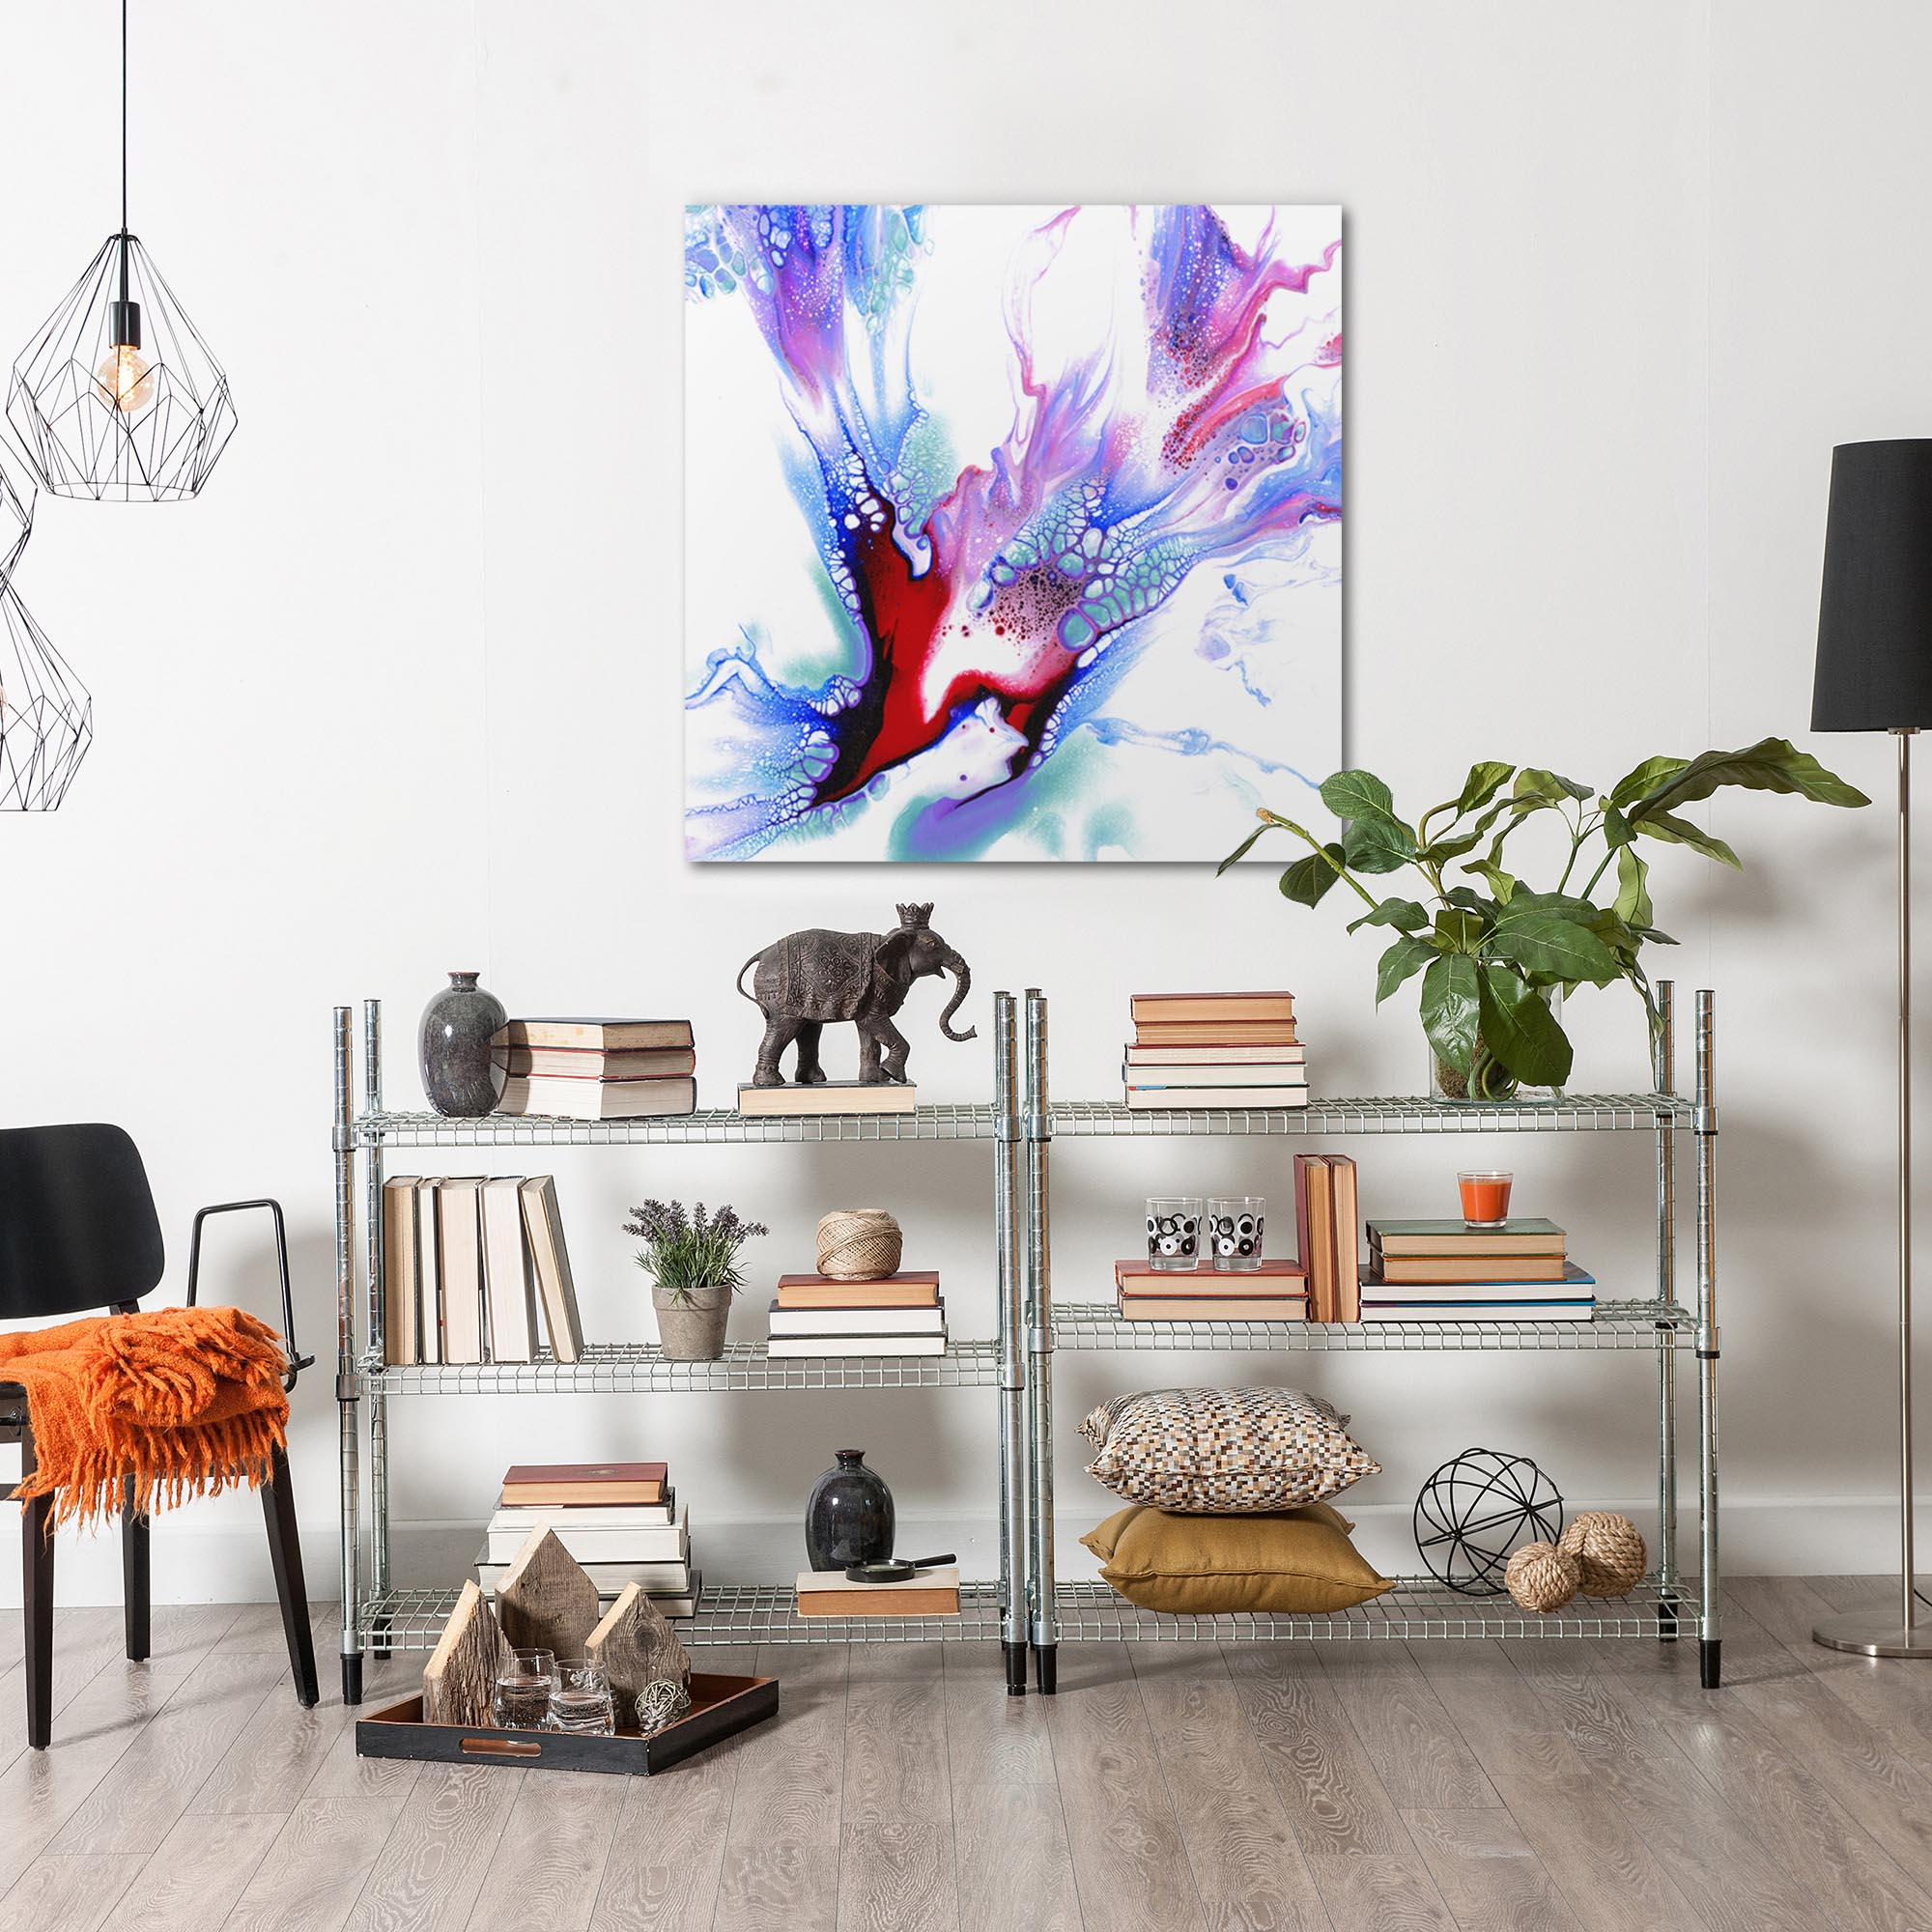 Concealed by Elana Reiter - Abstract Wall Art, Modern Home Decor (36in x 36in) - Image 3